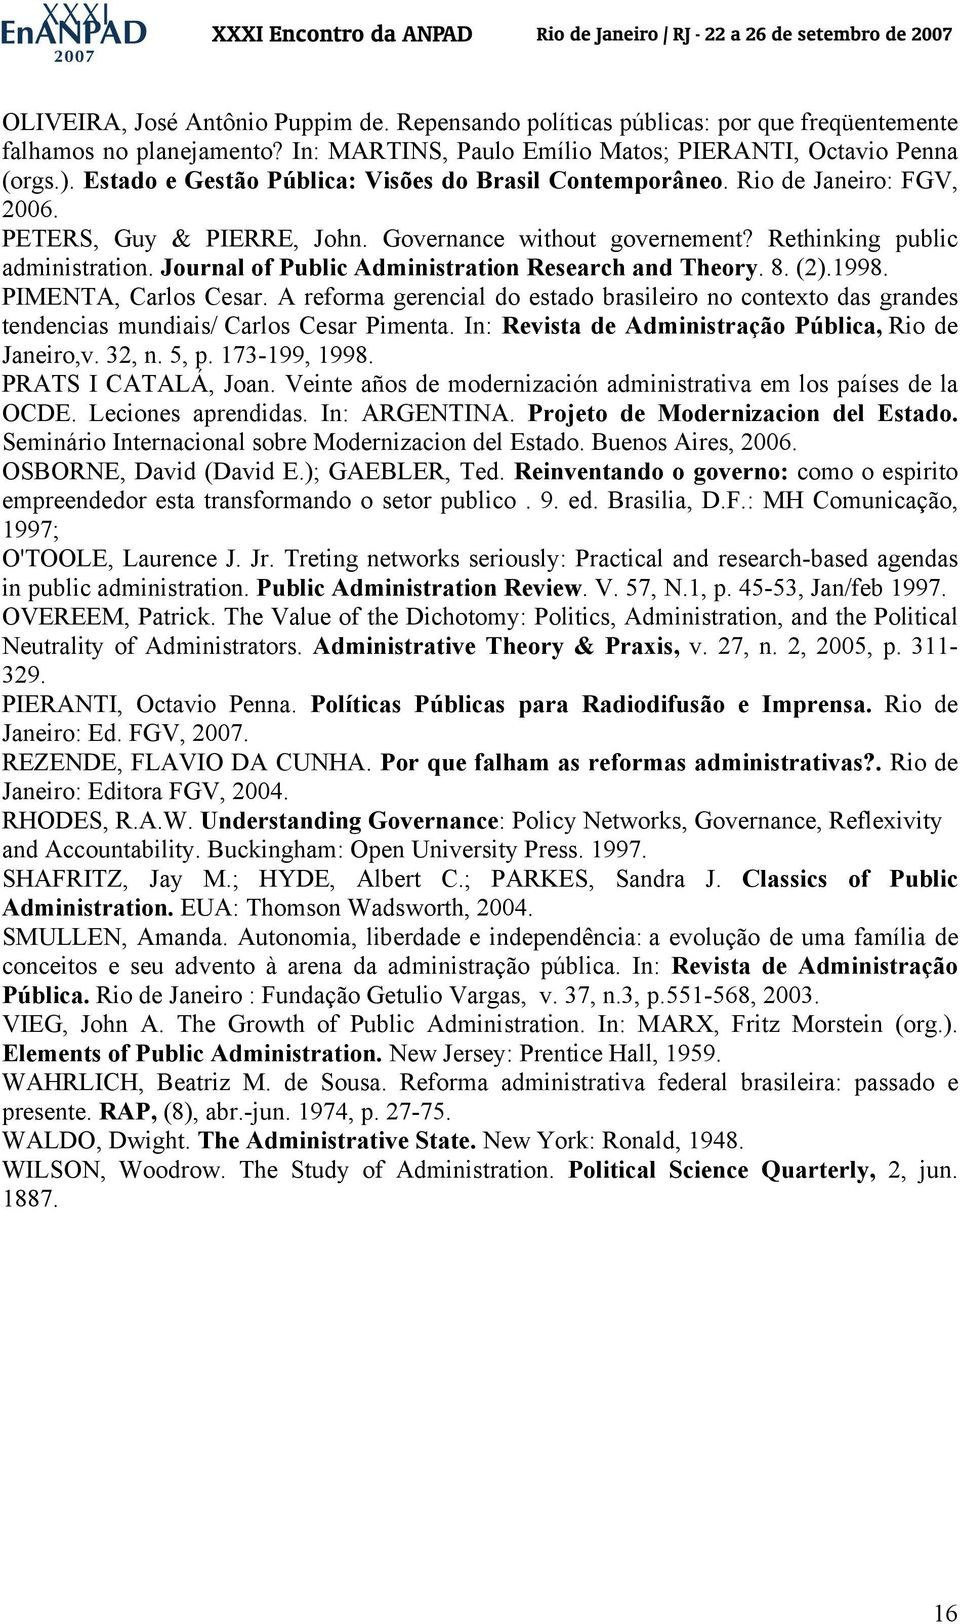 Journal of Public Administration Research and Theory. 8. (2).1998. PIMENTA, Carlos Cesar. A reforma gerencial do estado brasileiro no contexto das grandes tendencias mundiais/ Carlos Cesar Pimenta.